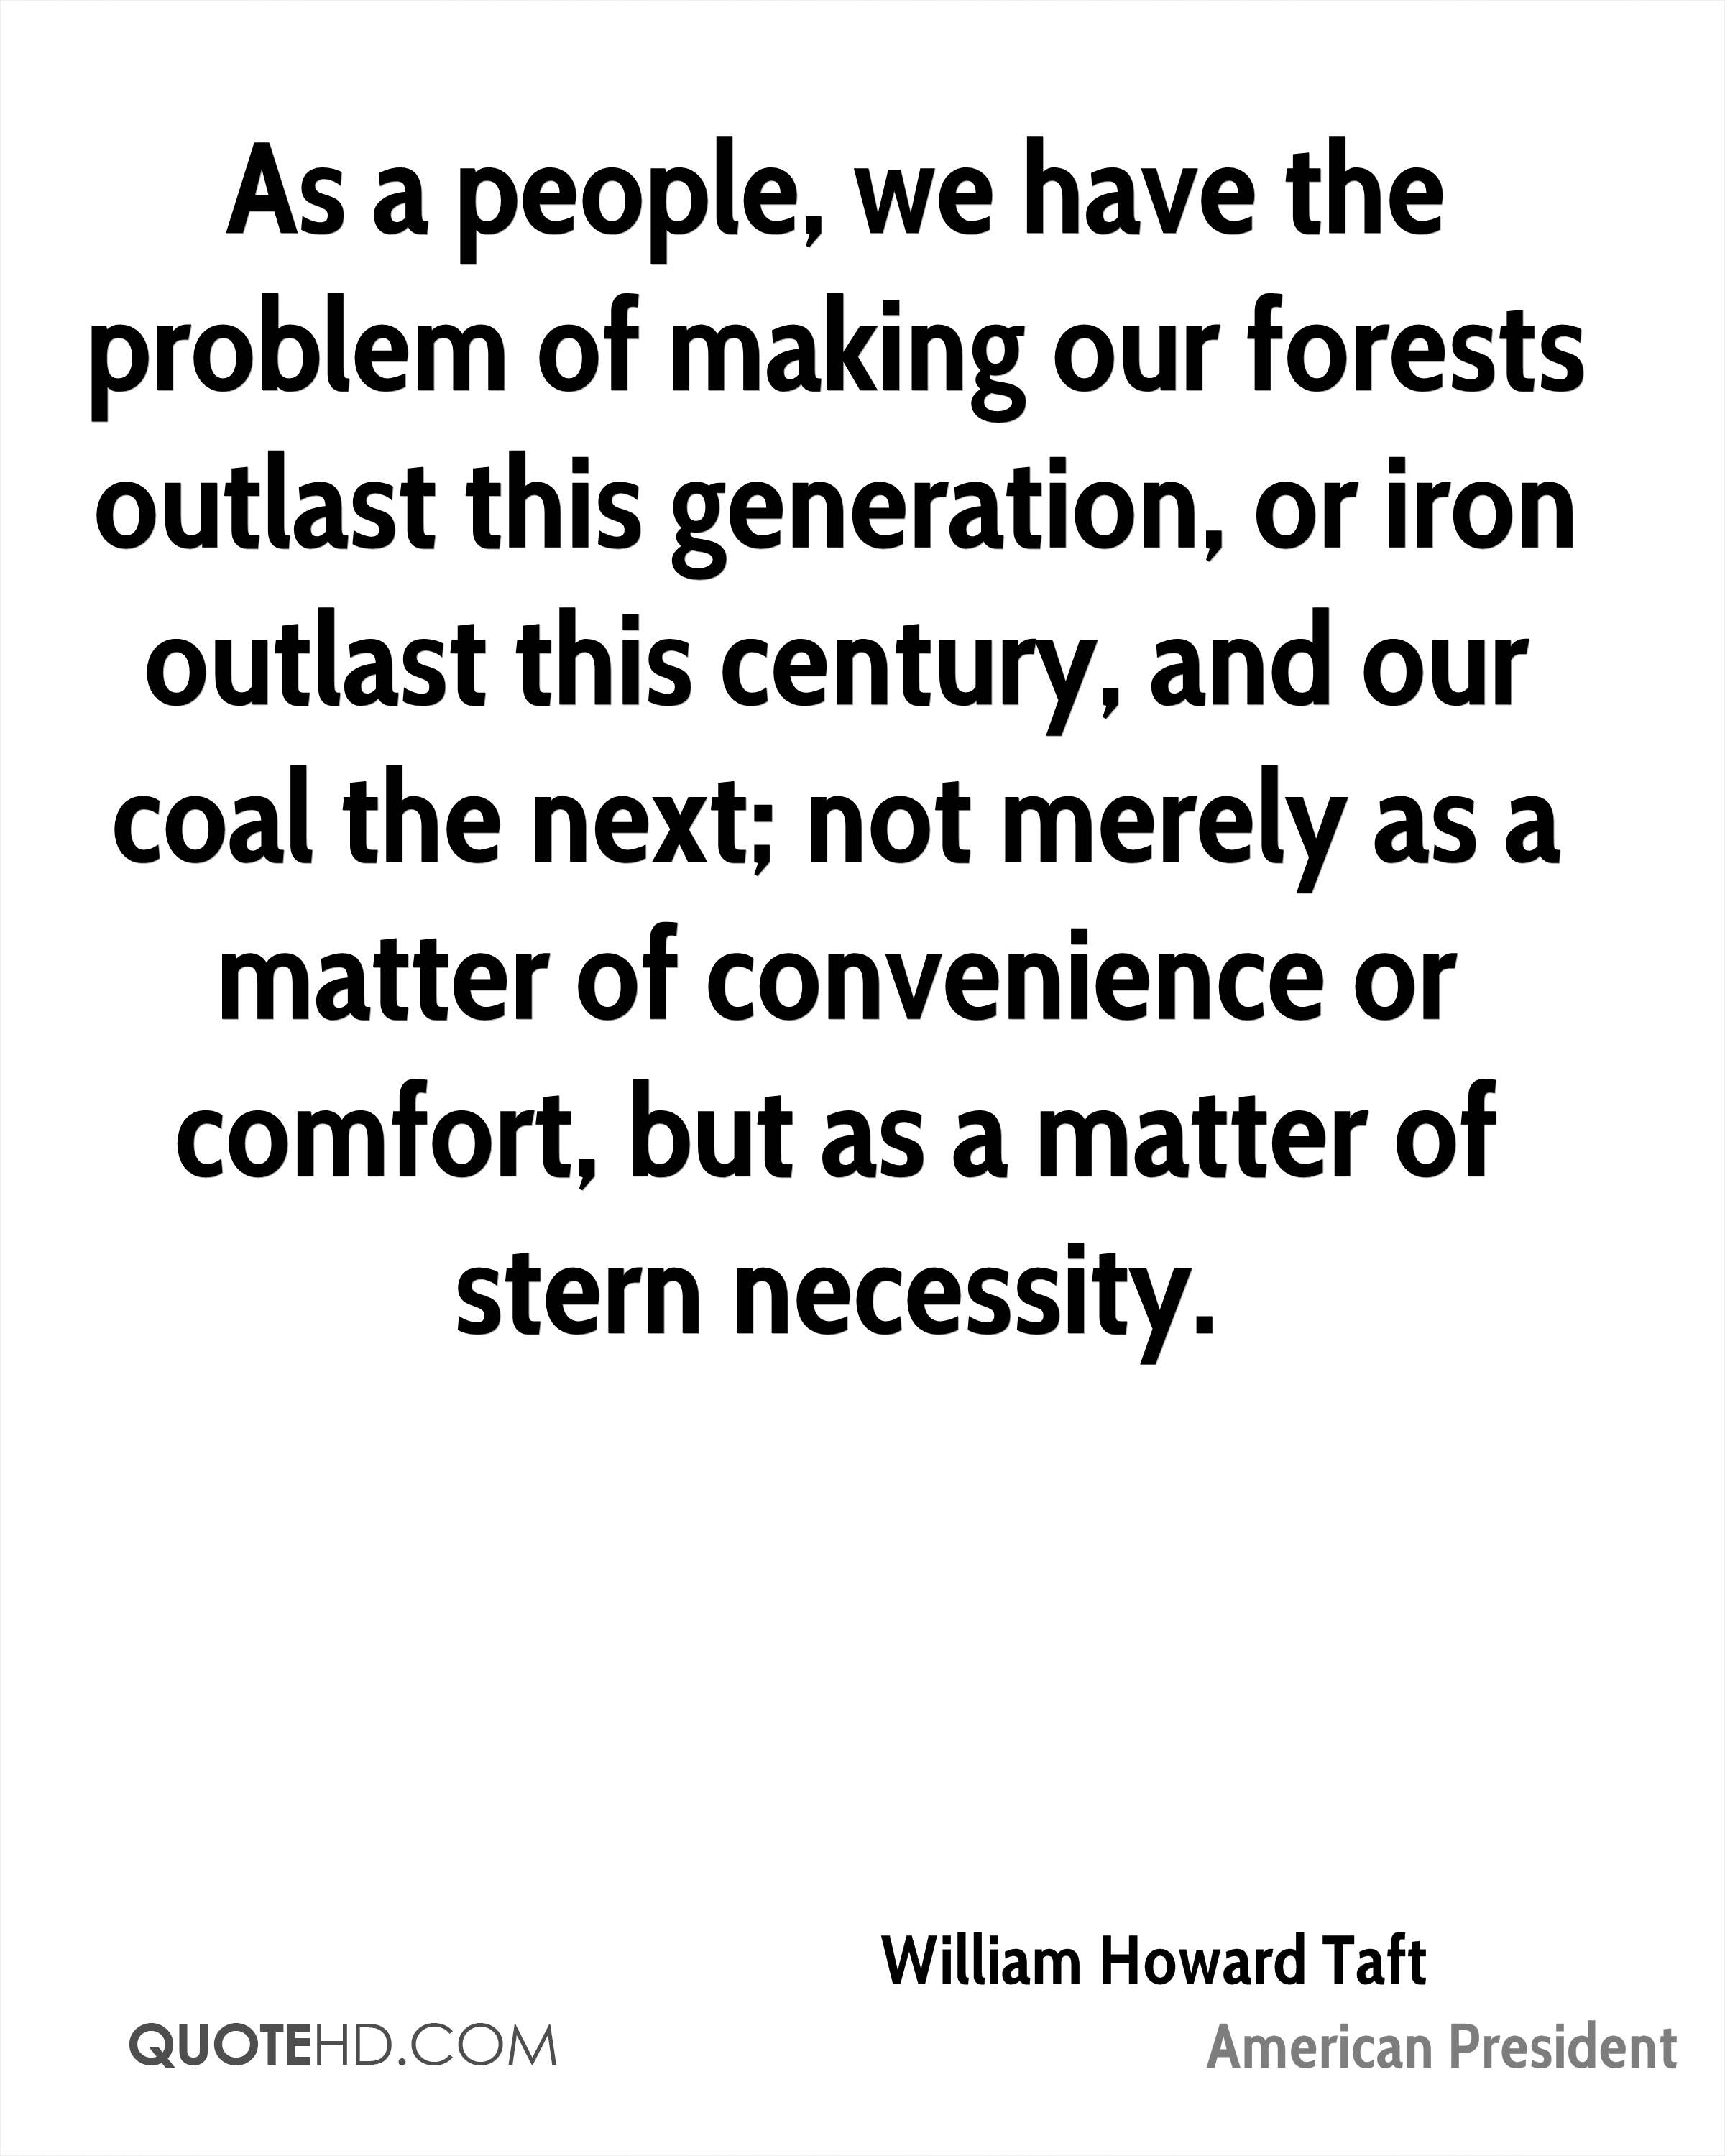 As a people, we have the problem of making our forests outlast this generation, or iron outlast this century, and our coal the next; not merely as a matter of convenience or comfort, but as a matter of stern necessity.